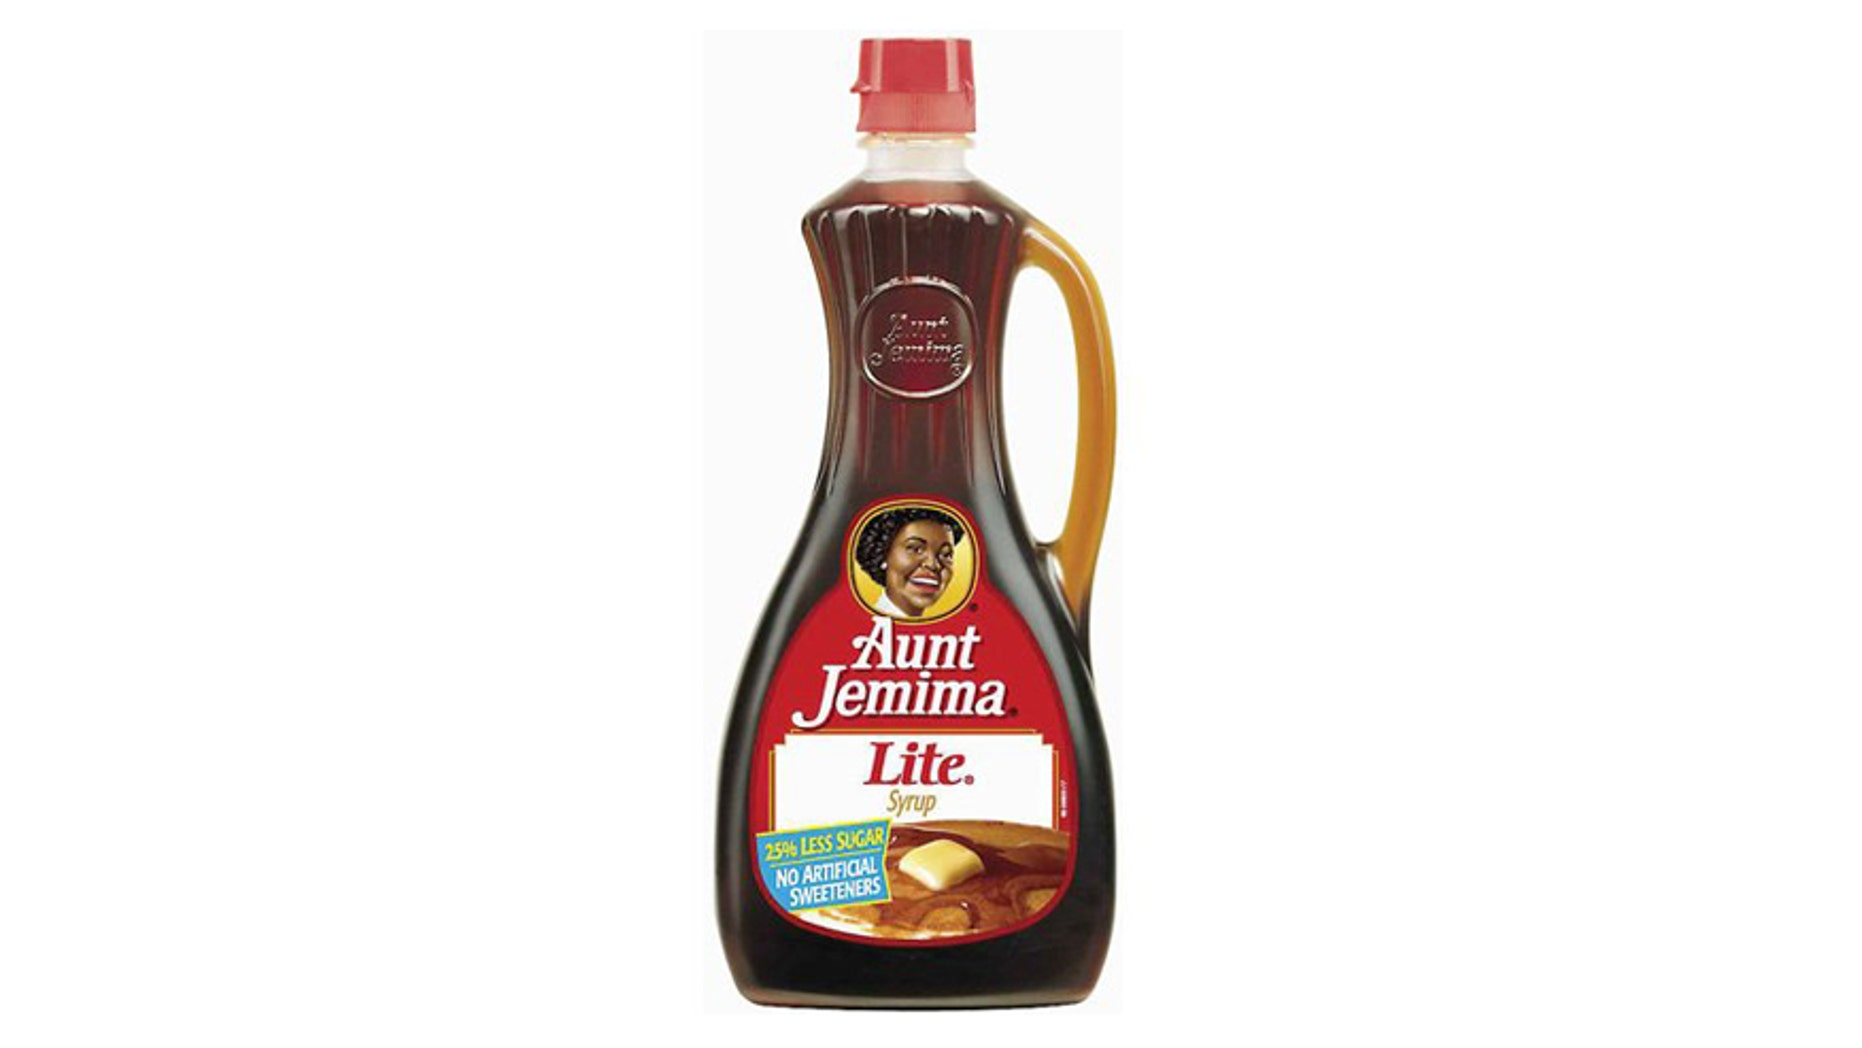 A bottle of syrup with the updated Aunt Jemima likeness.